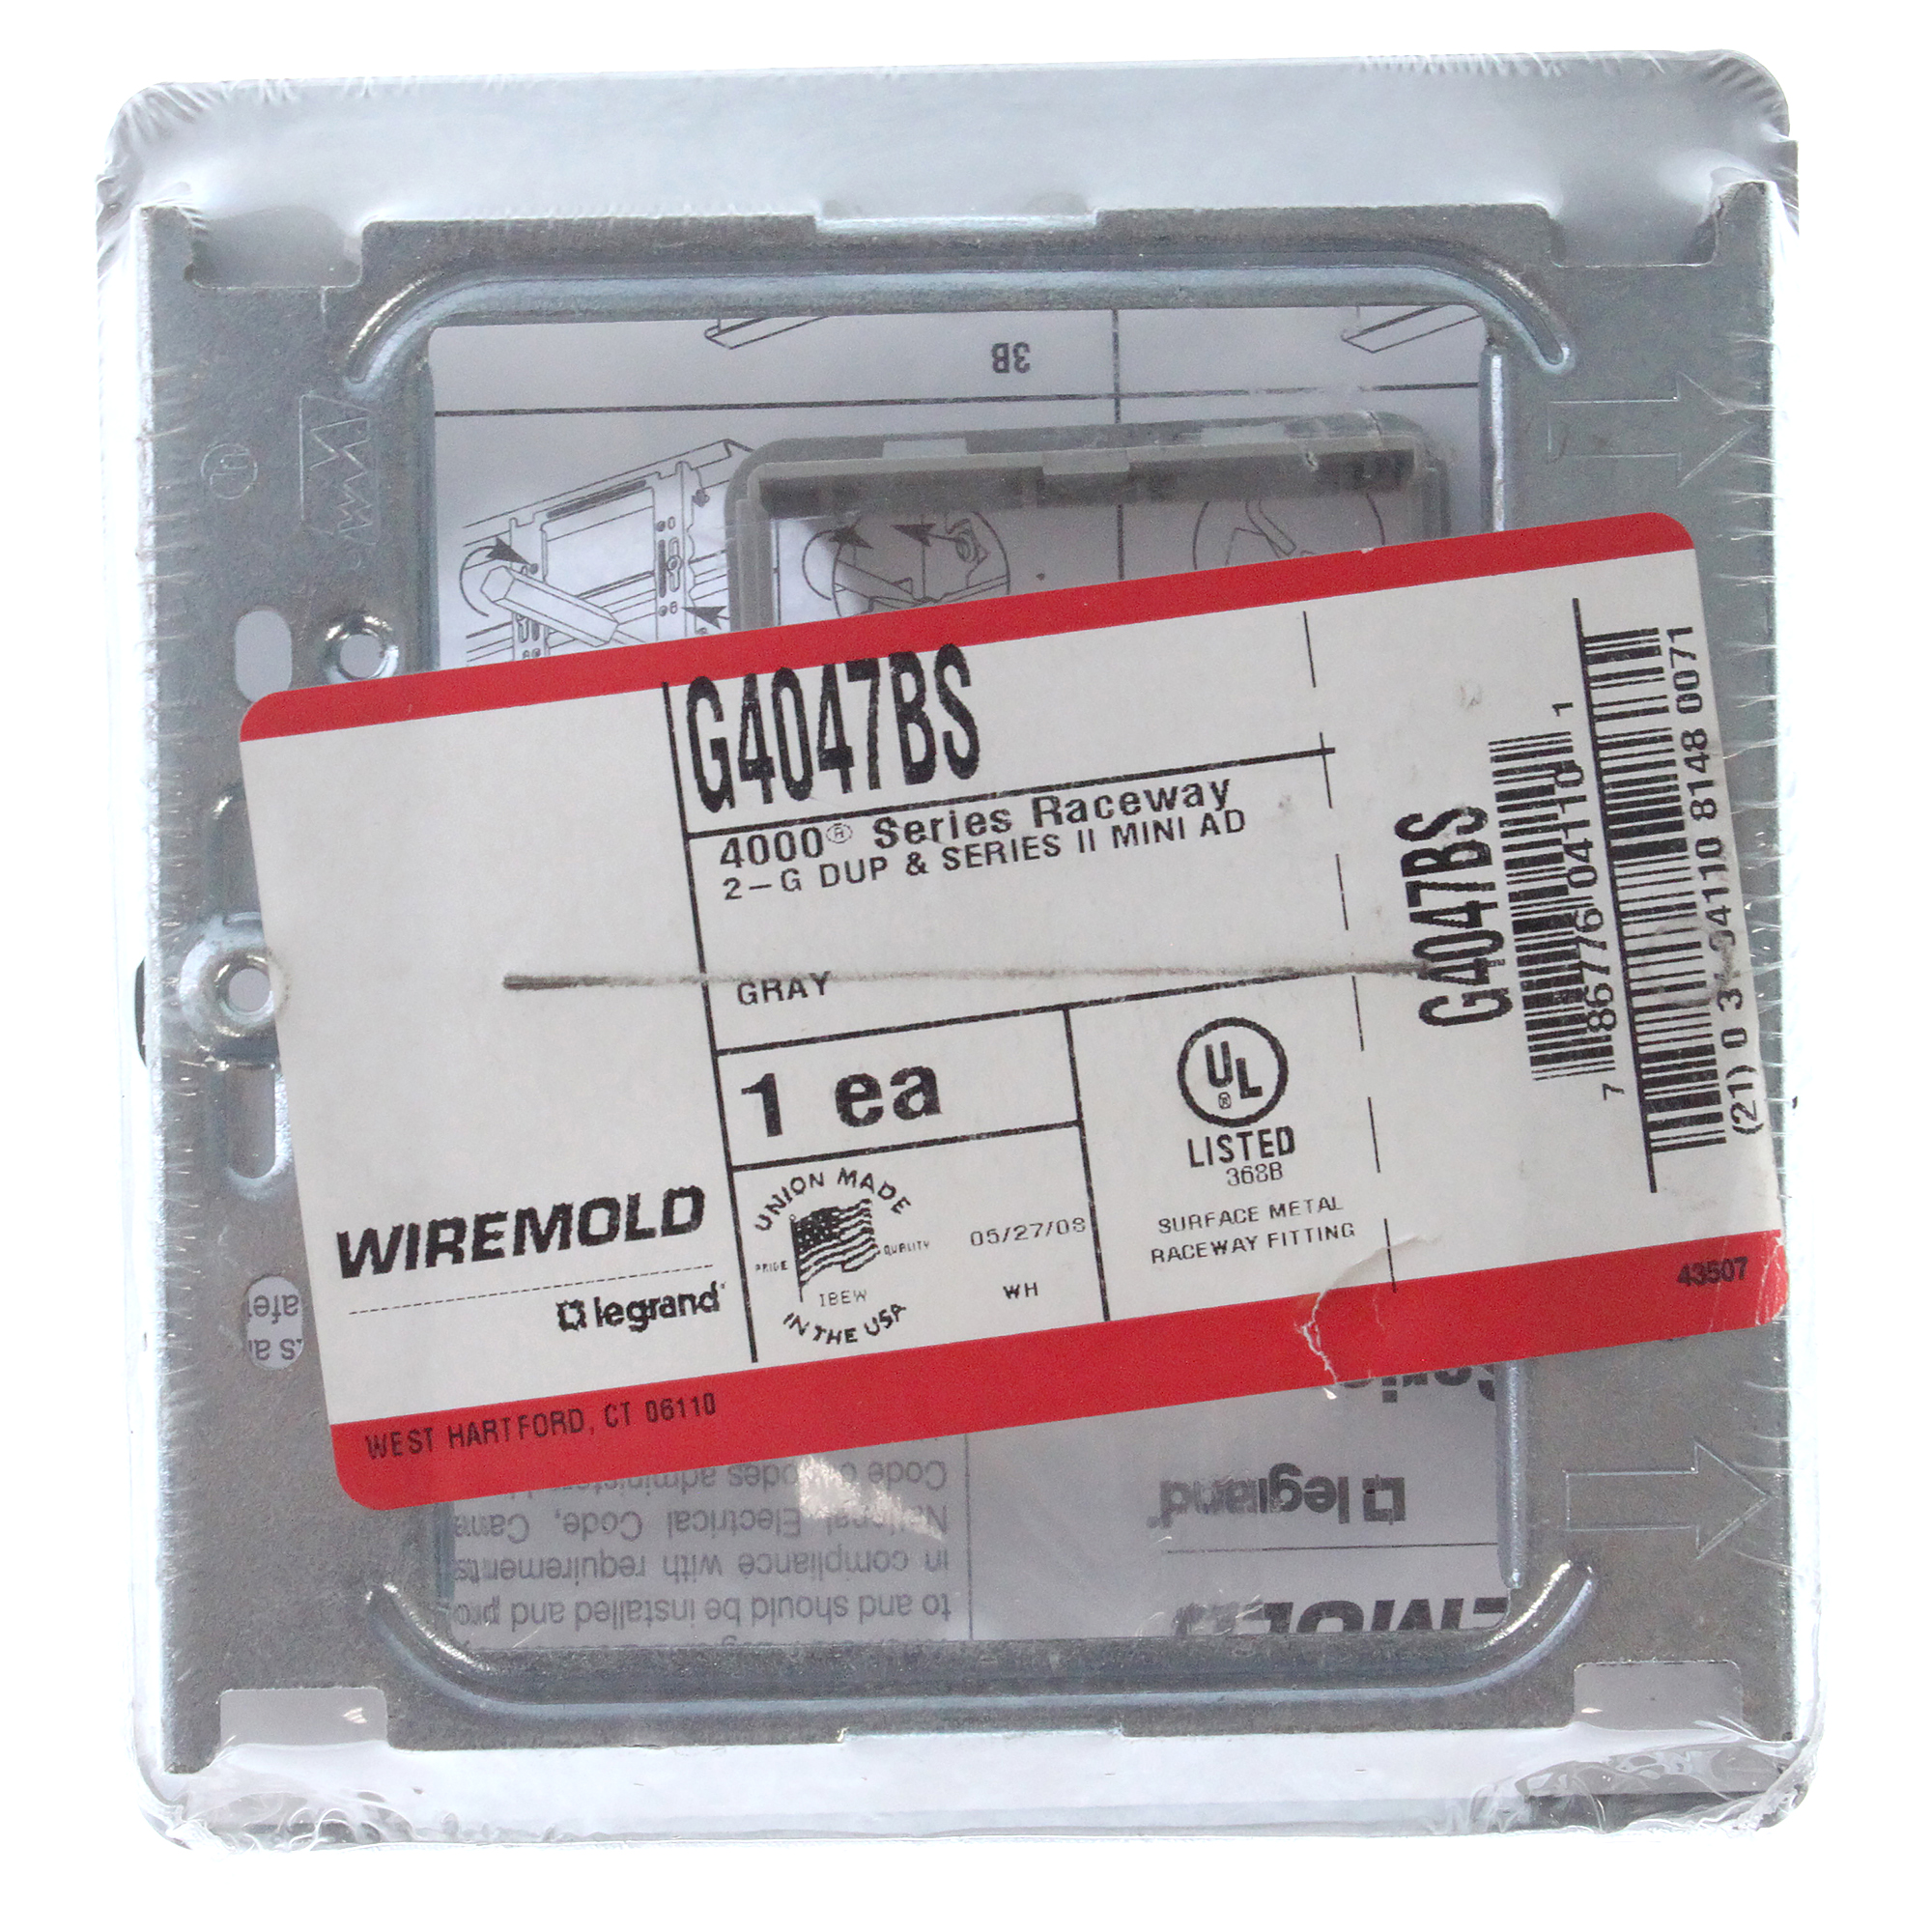 Wiremold Legrand G4047BS 2-gang Cover Plate 4000 Series Raceway Gray ...